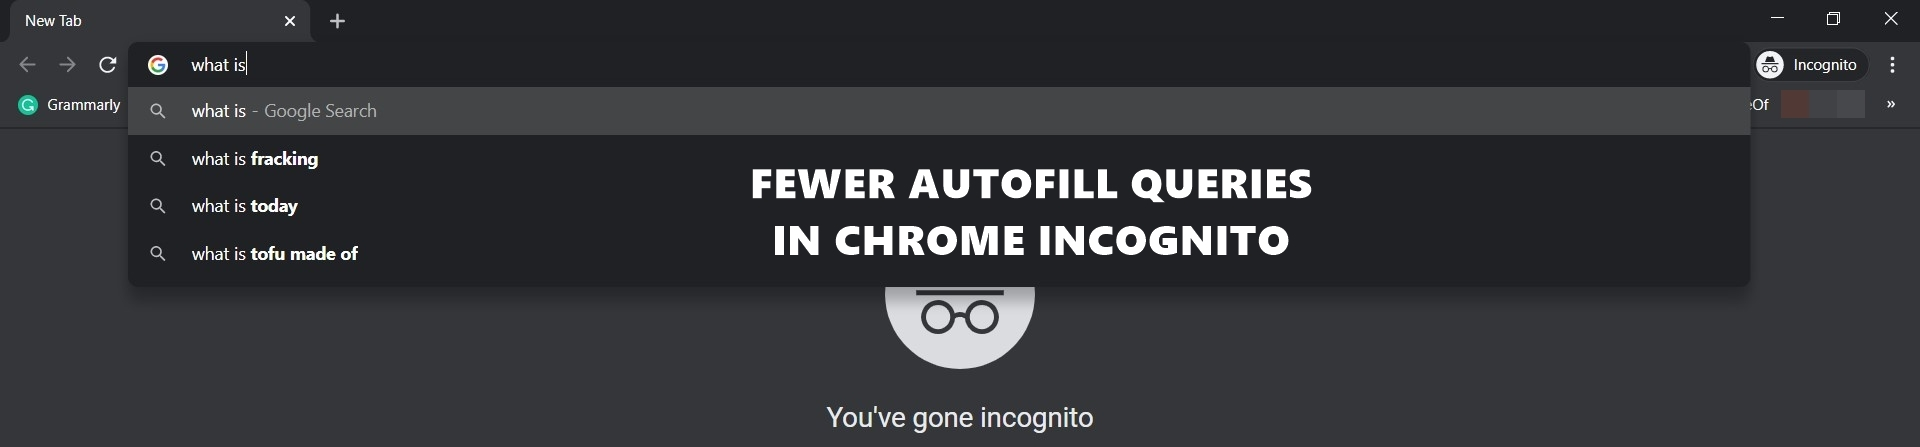 Fewer Autocomplete Queries in Incognito Mode